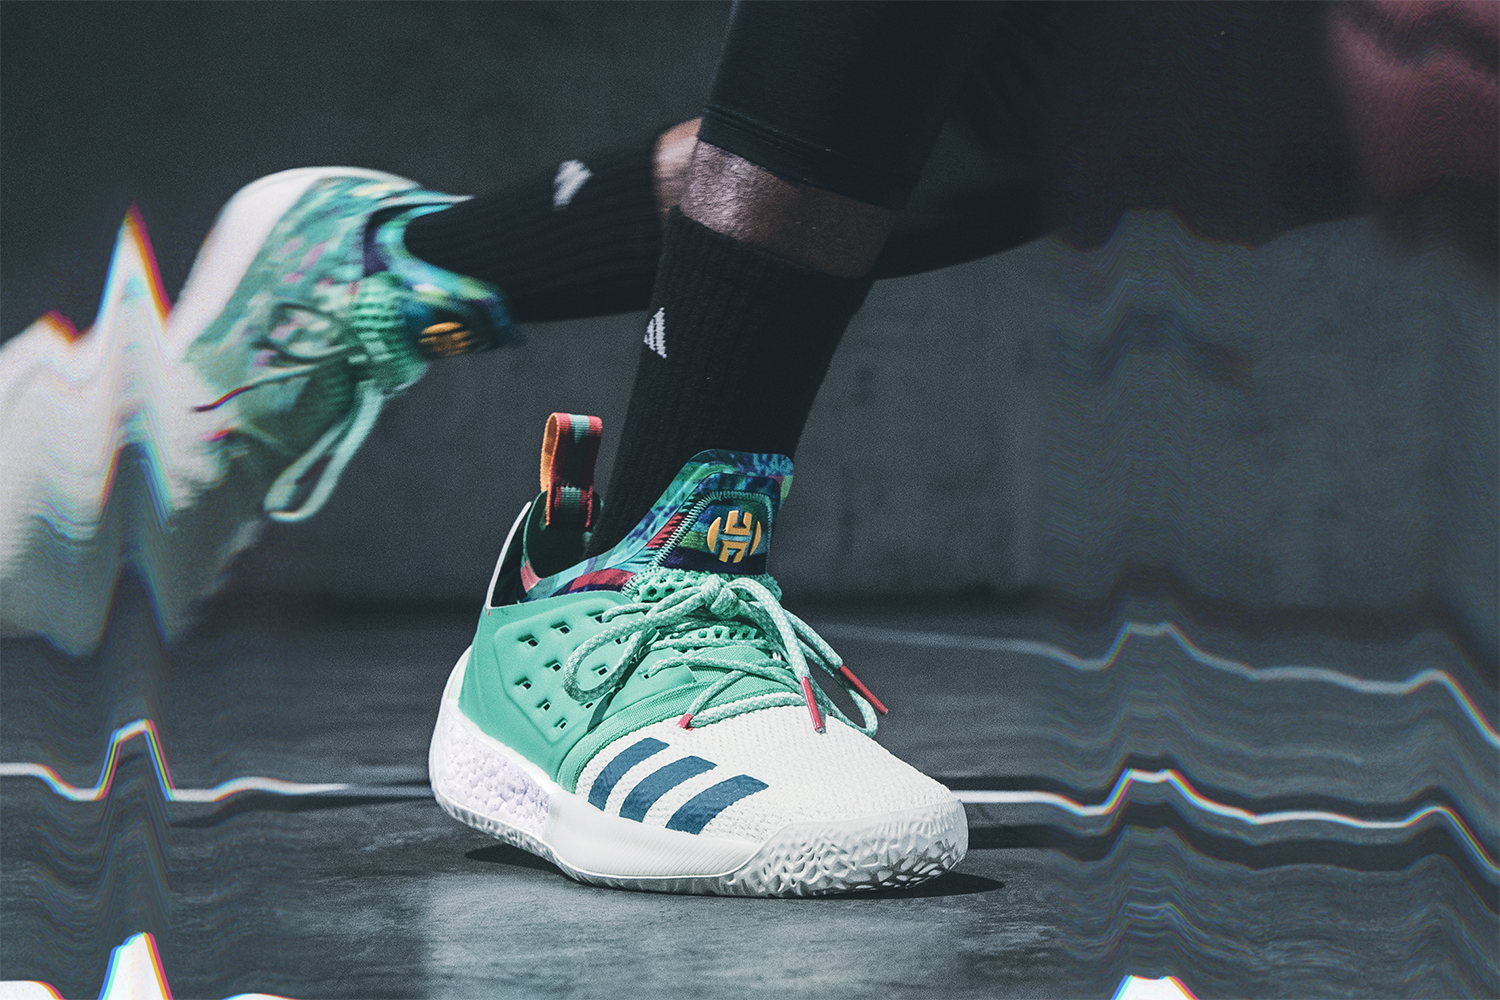 7e3a07cc321c adidas + James Harden Change Direction with Harden Vol. 2 - Hardwood ...